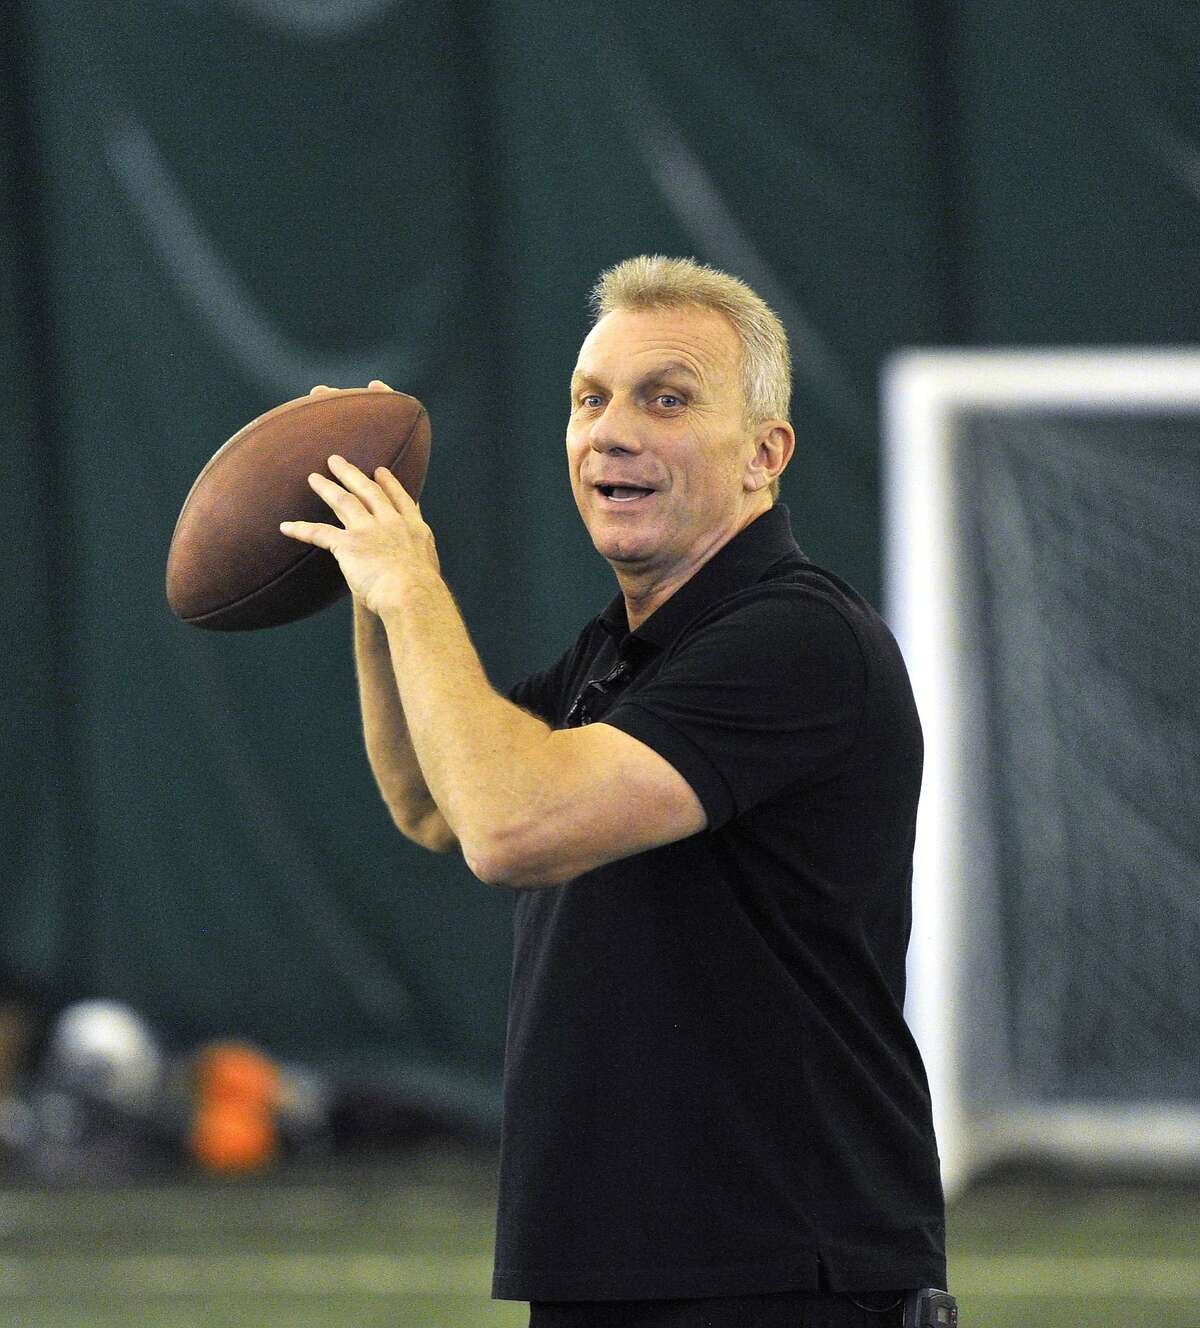 NFL legend Joe Montana held a passing camp at Crystal Palace Sports Centre The San Francisco 49ers are to play the Jacksonville Jaguars in game two, of the NFL International Series at Wembley Stadium in London on Sunday, October 27. 24/10/13, photo: Sean Ryan /NFL